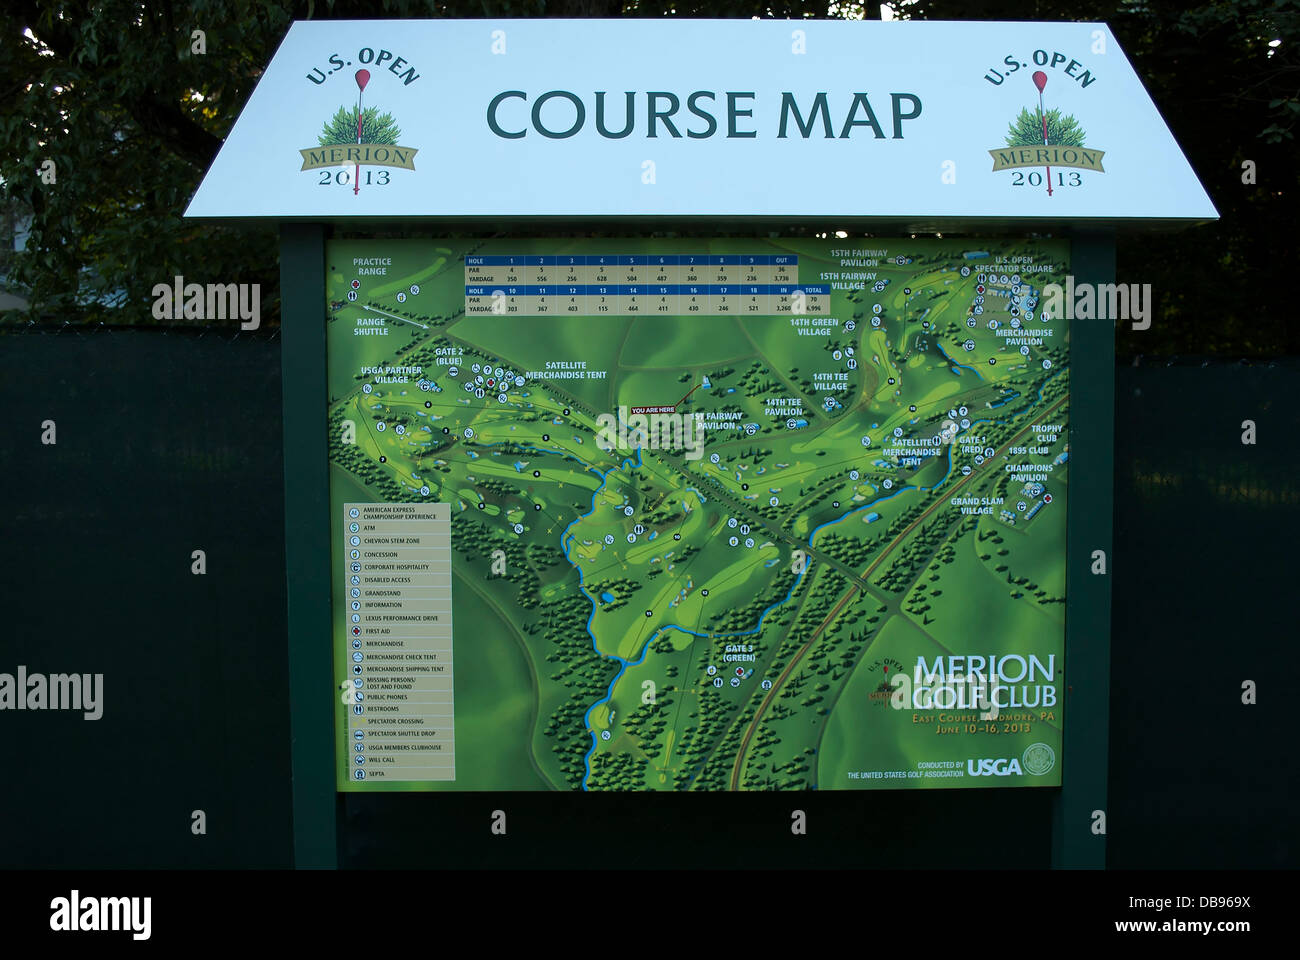 course map merion golf club site of 2013 us open golf haverford township near ardmore pennsylvania usa